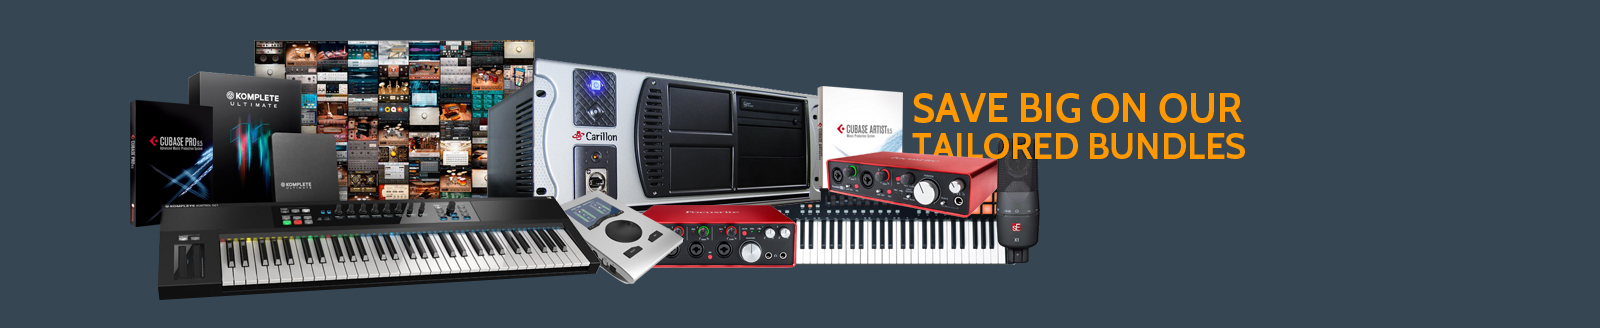 DAW computer packages with big savings